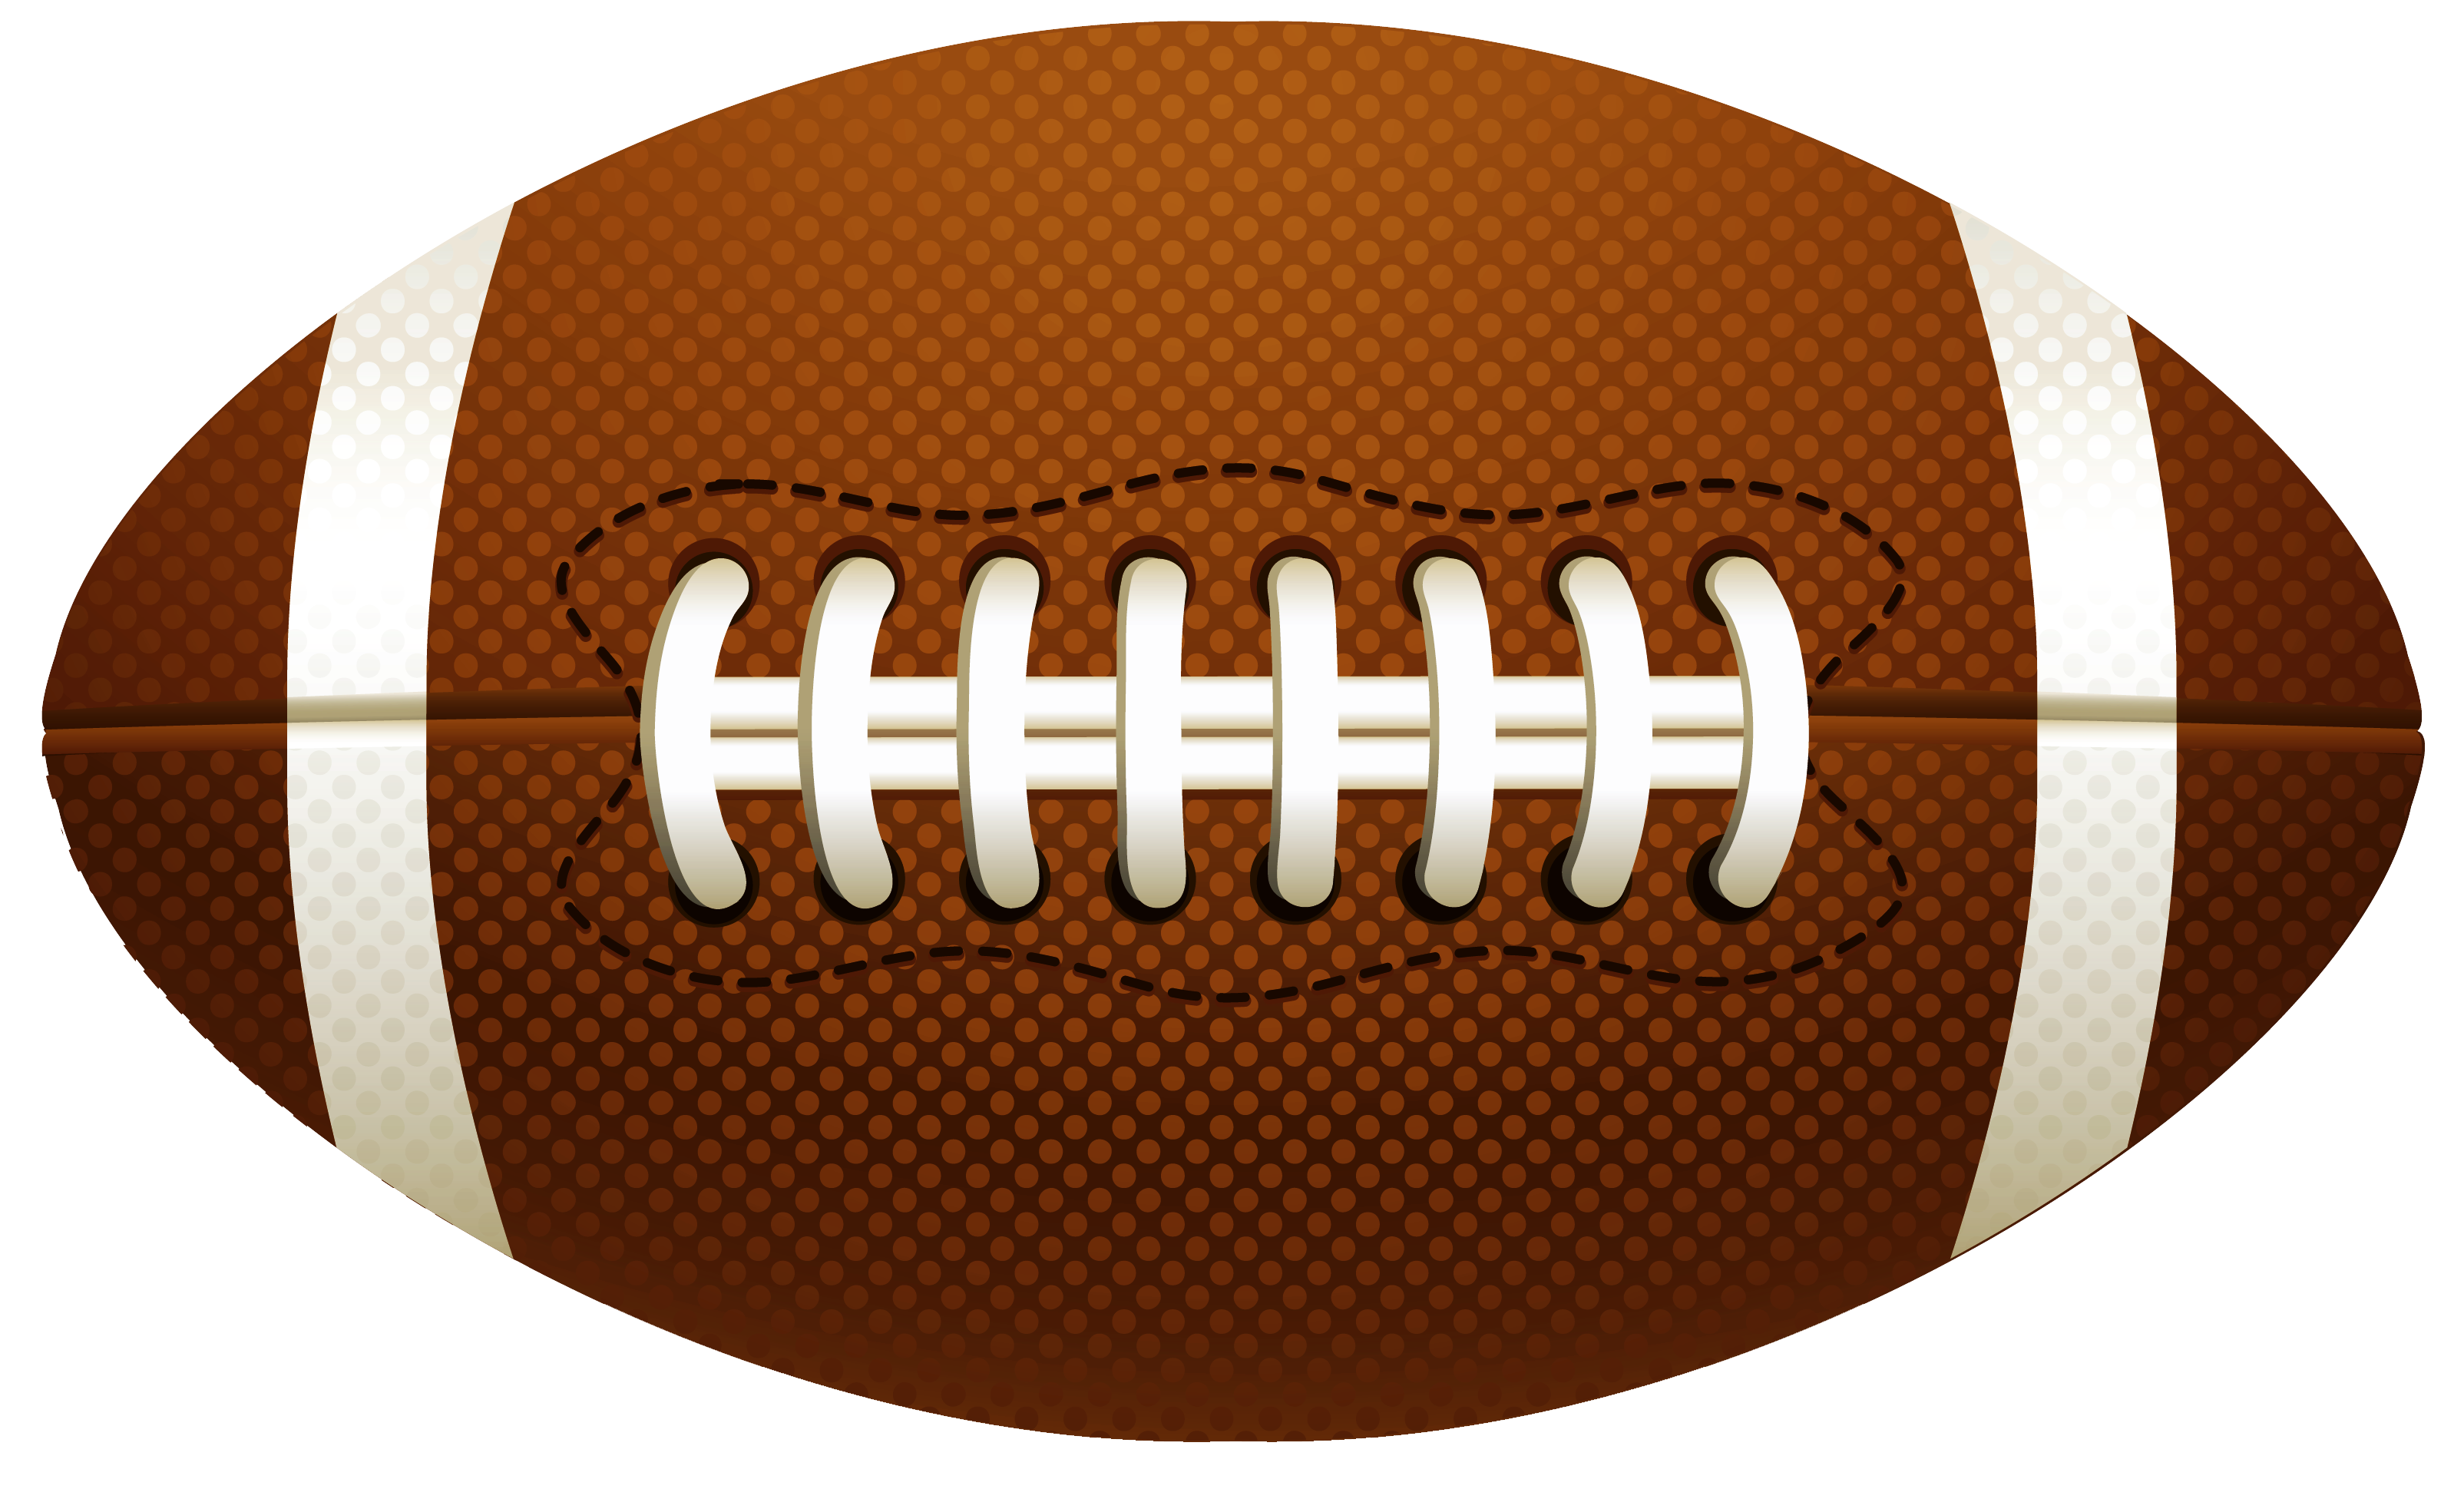 Free Football Clipart Transparent Background, Download Free.